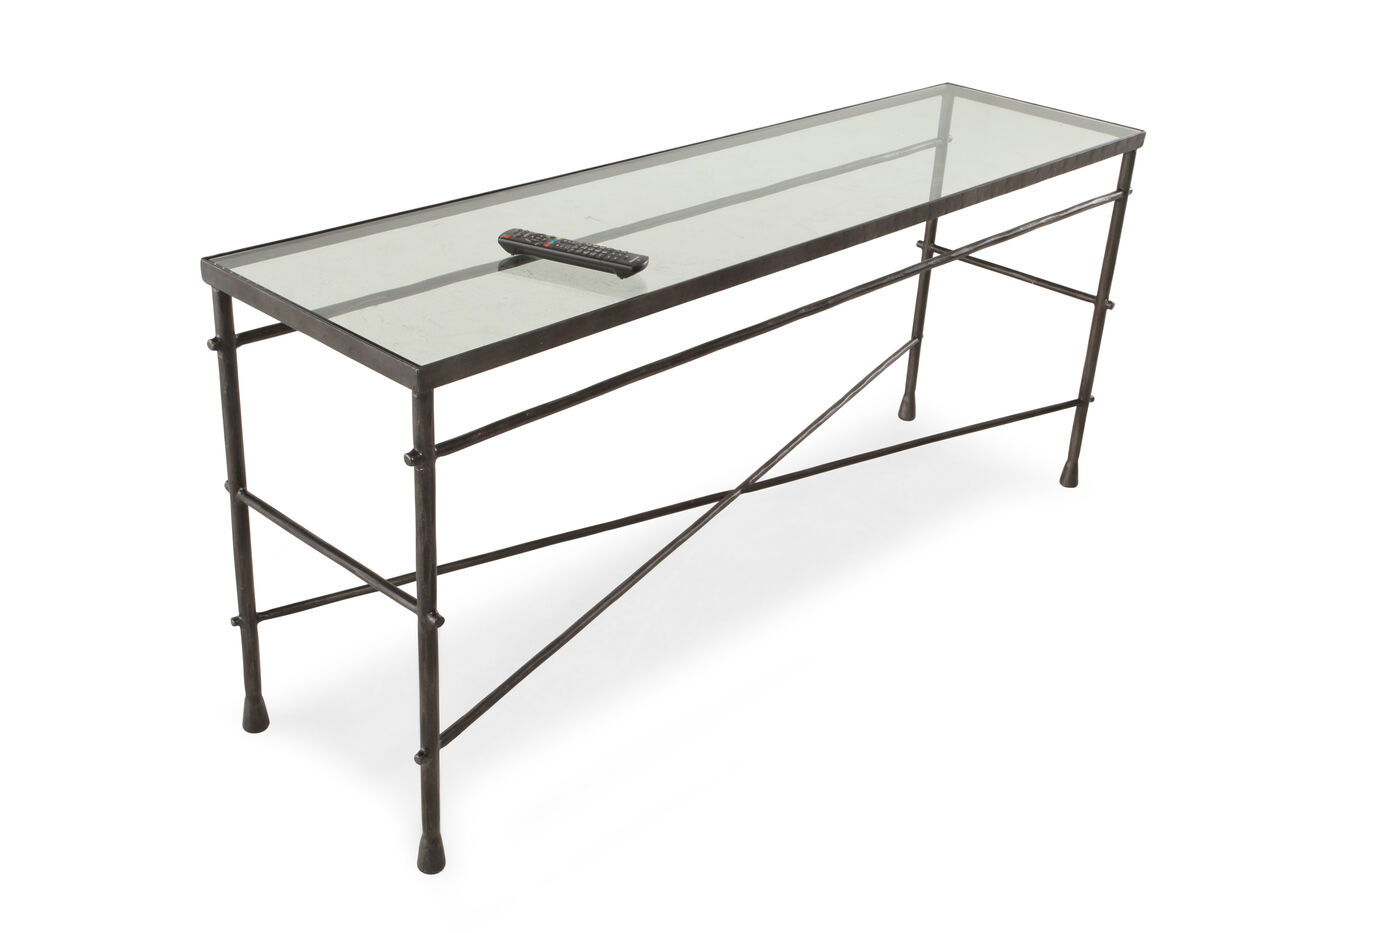 Cross braced traditional sofa table in gunmetal gray mathis cross braced traditional sofa table geotapseo Gallery